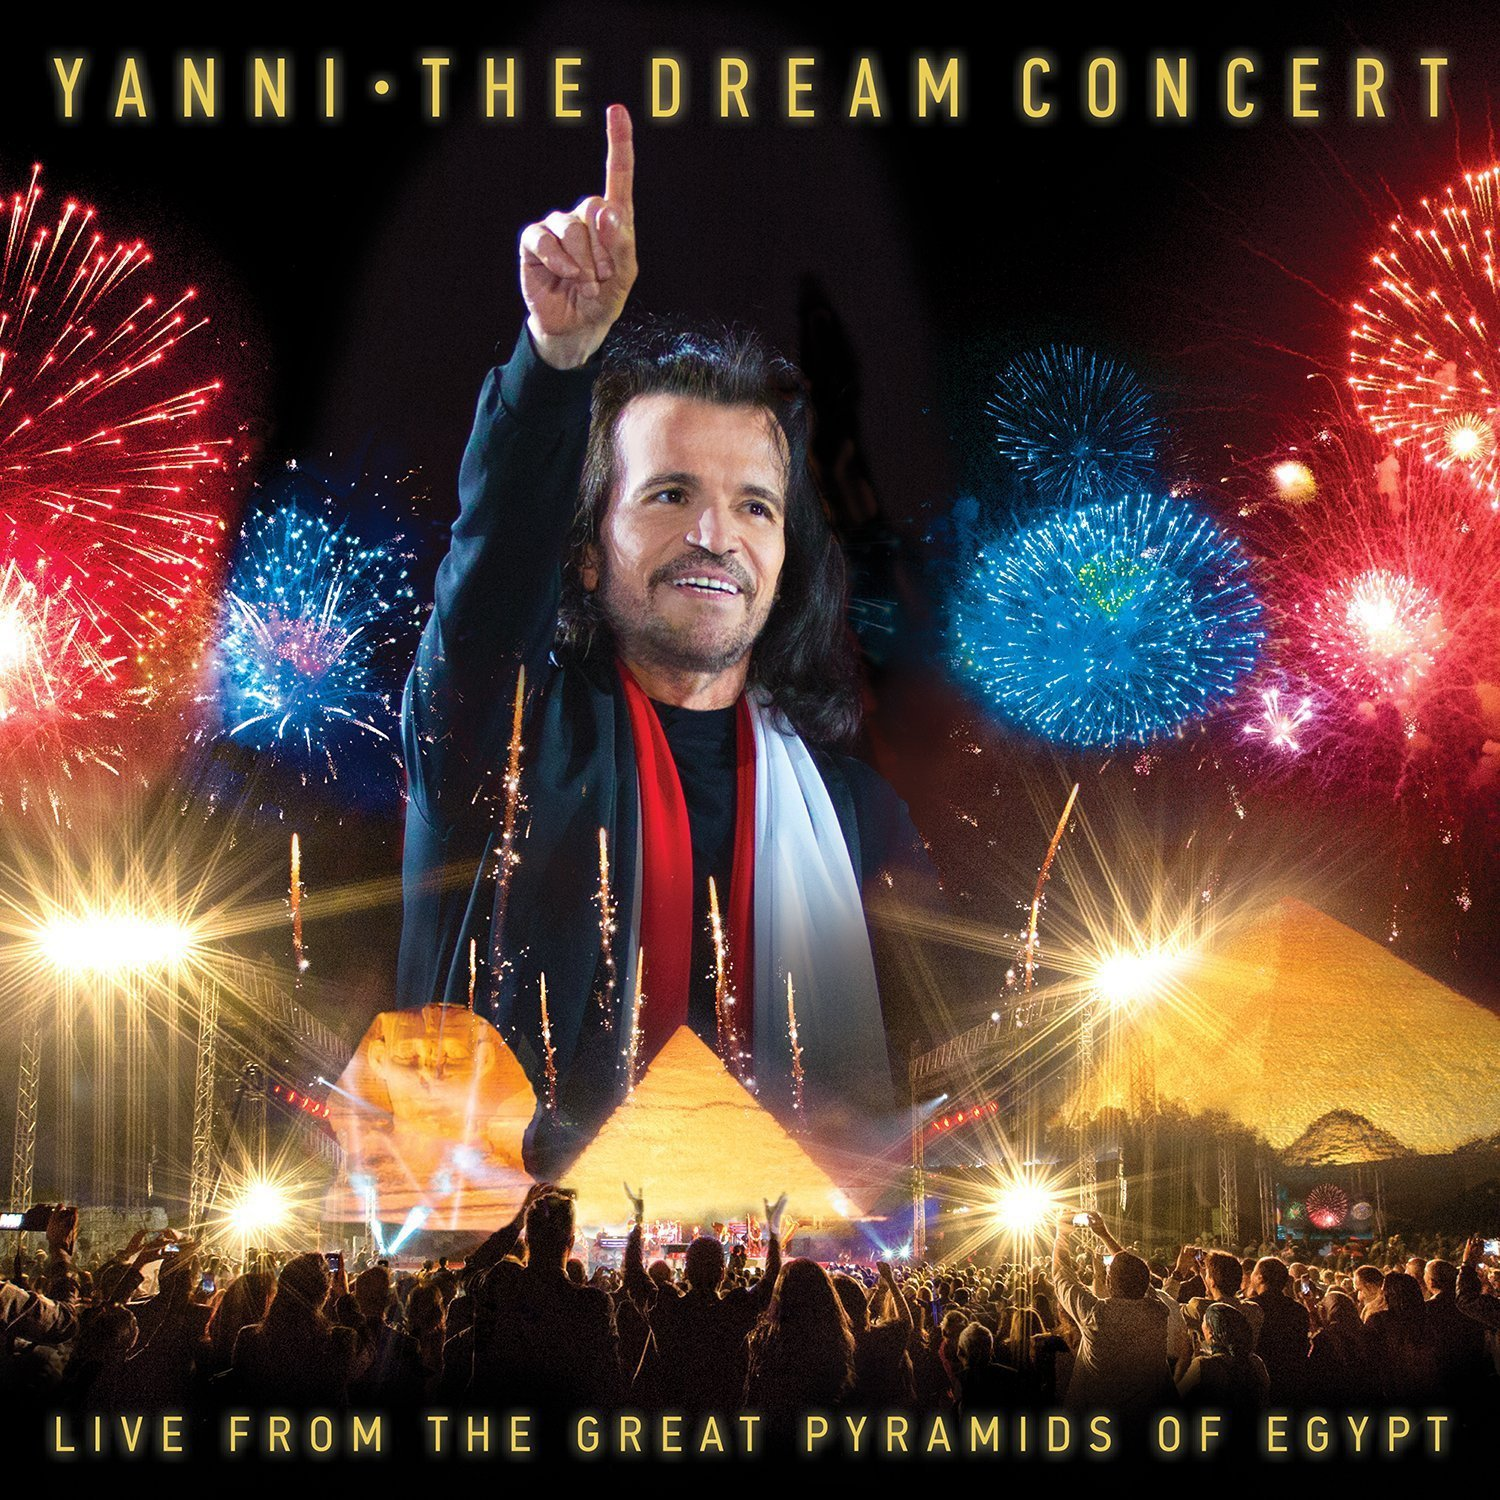 The Dream Concert: Live from the Great Pyramids of Egypt (CD+DVD)